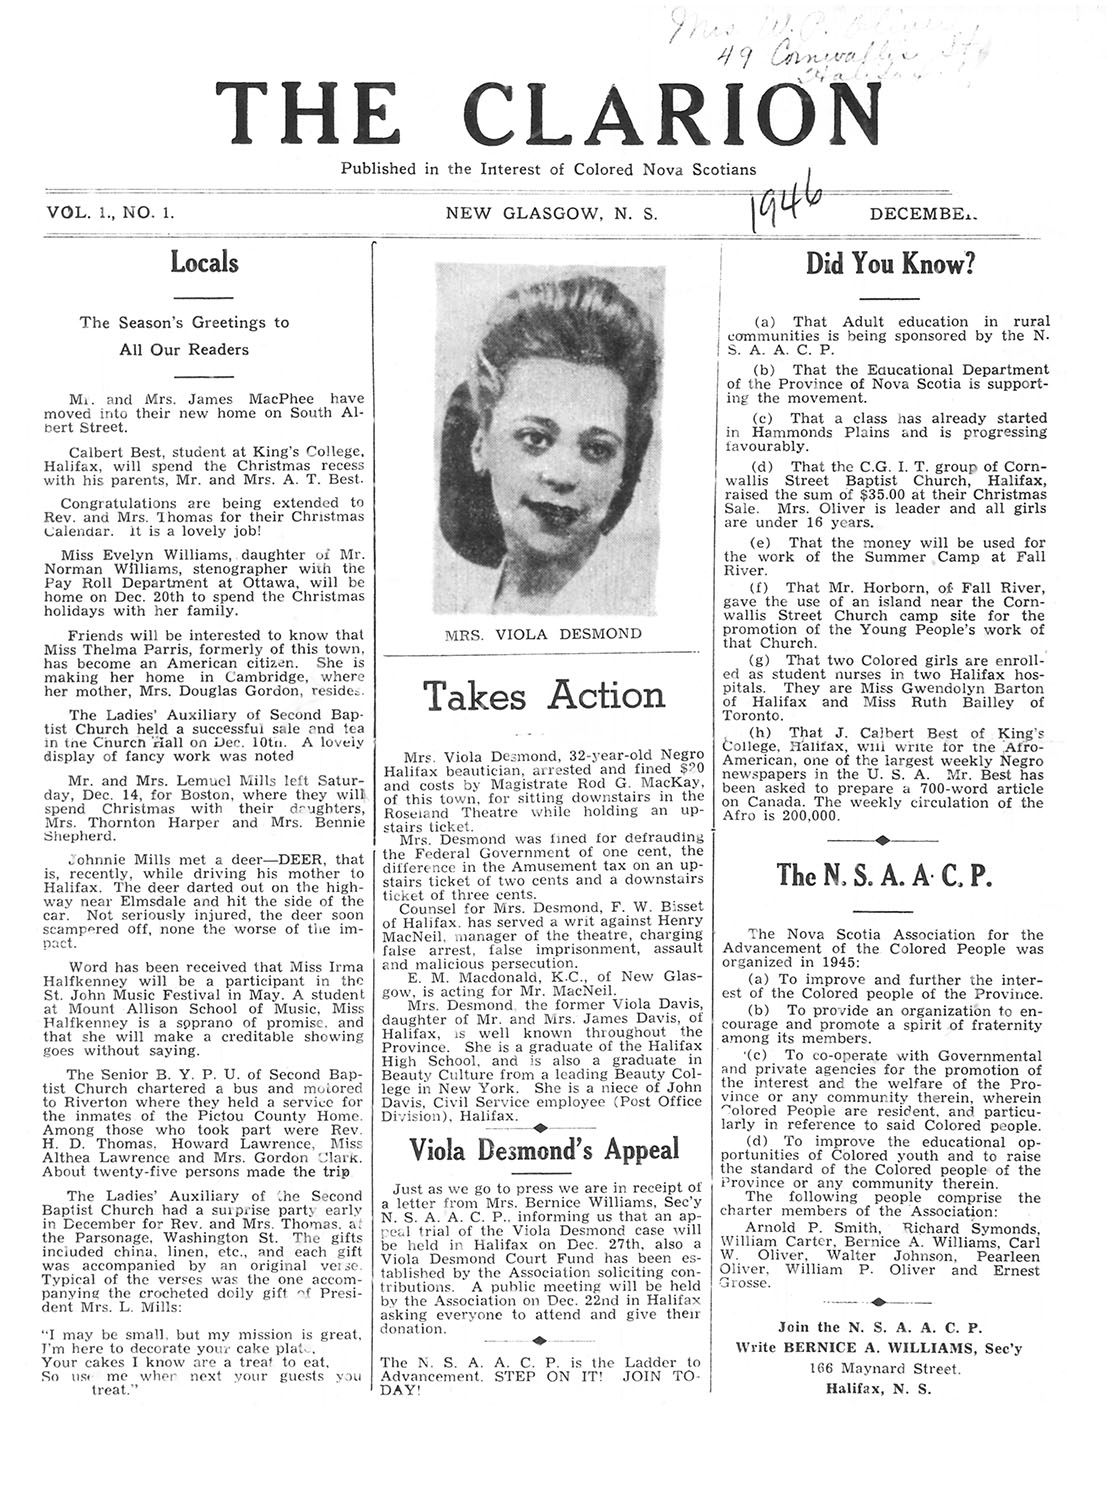 The_Clarion_-_Miss_Viola_Desmond_Takes_Action_(16499030491).jpg